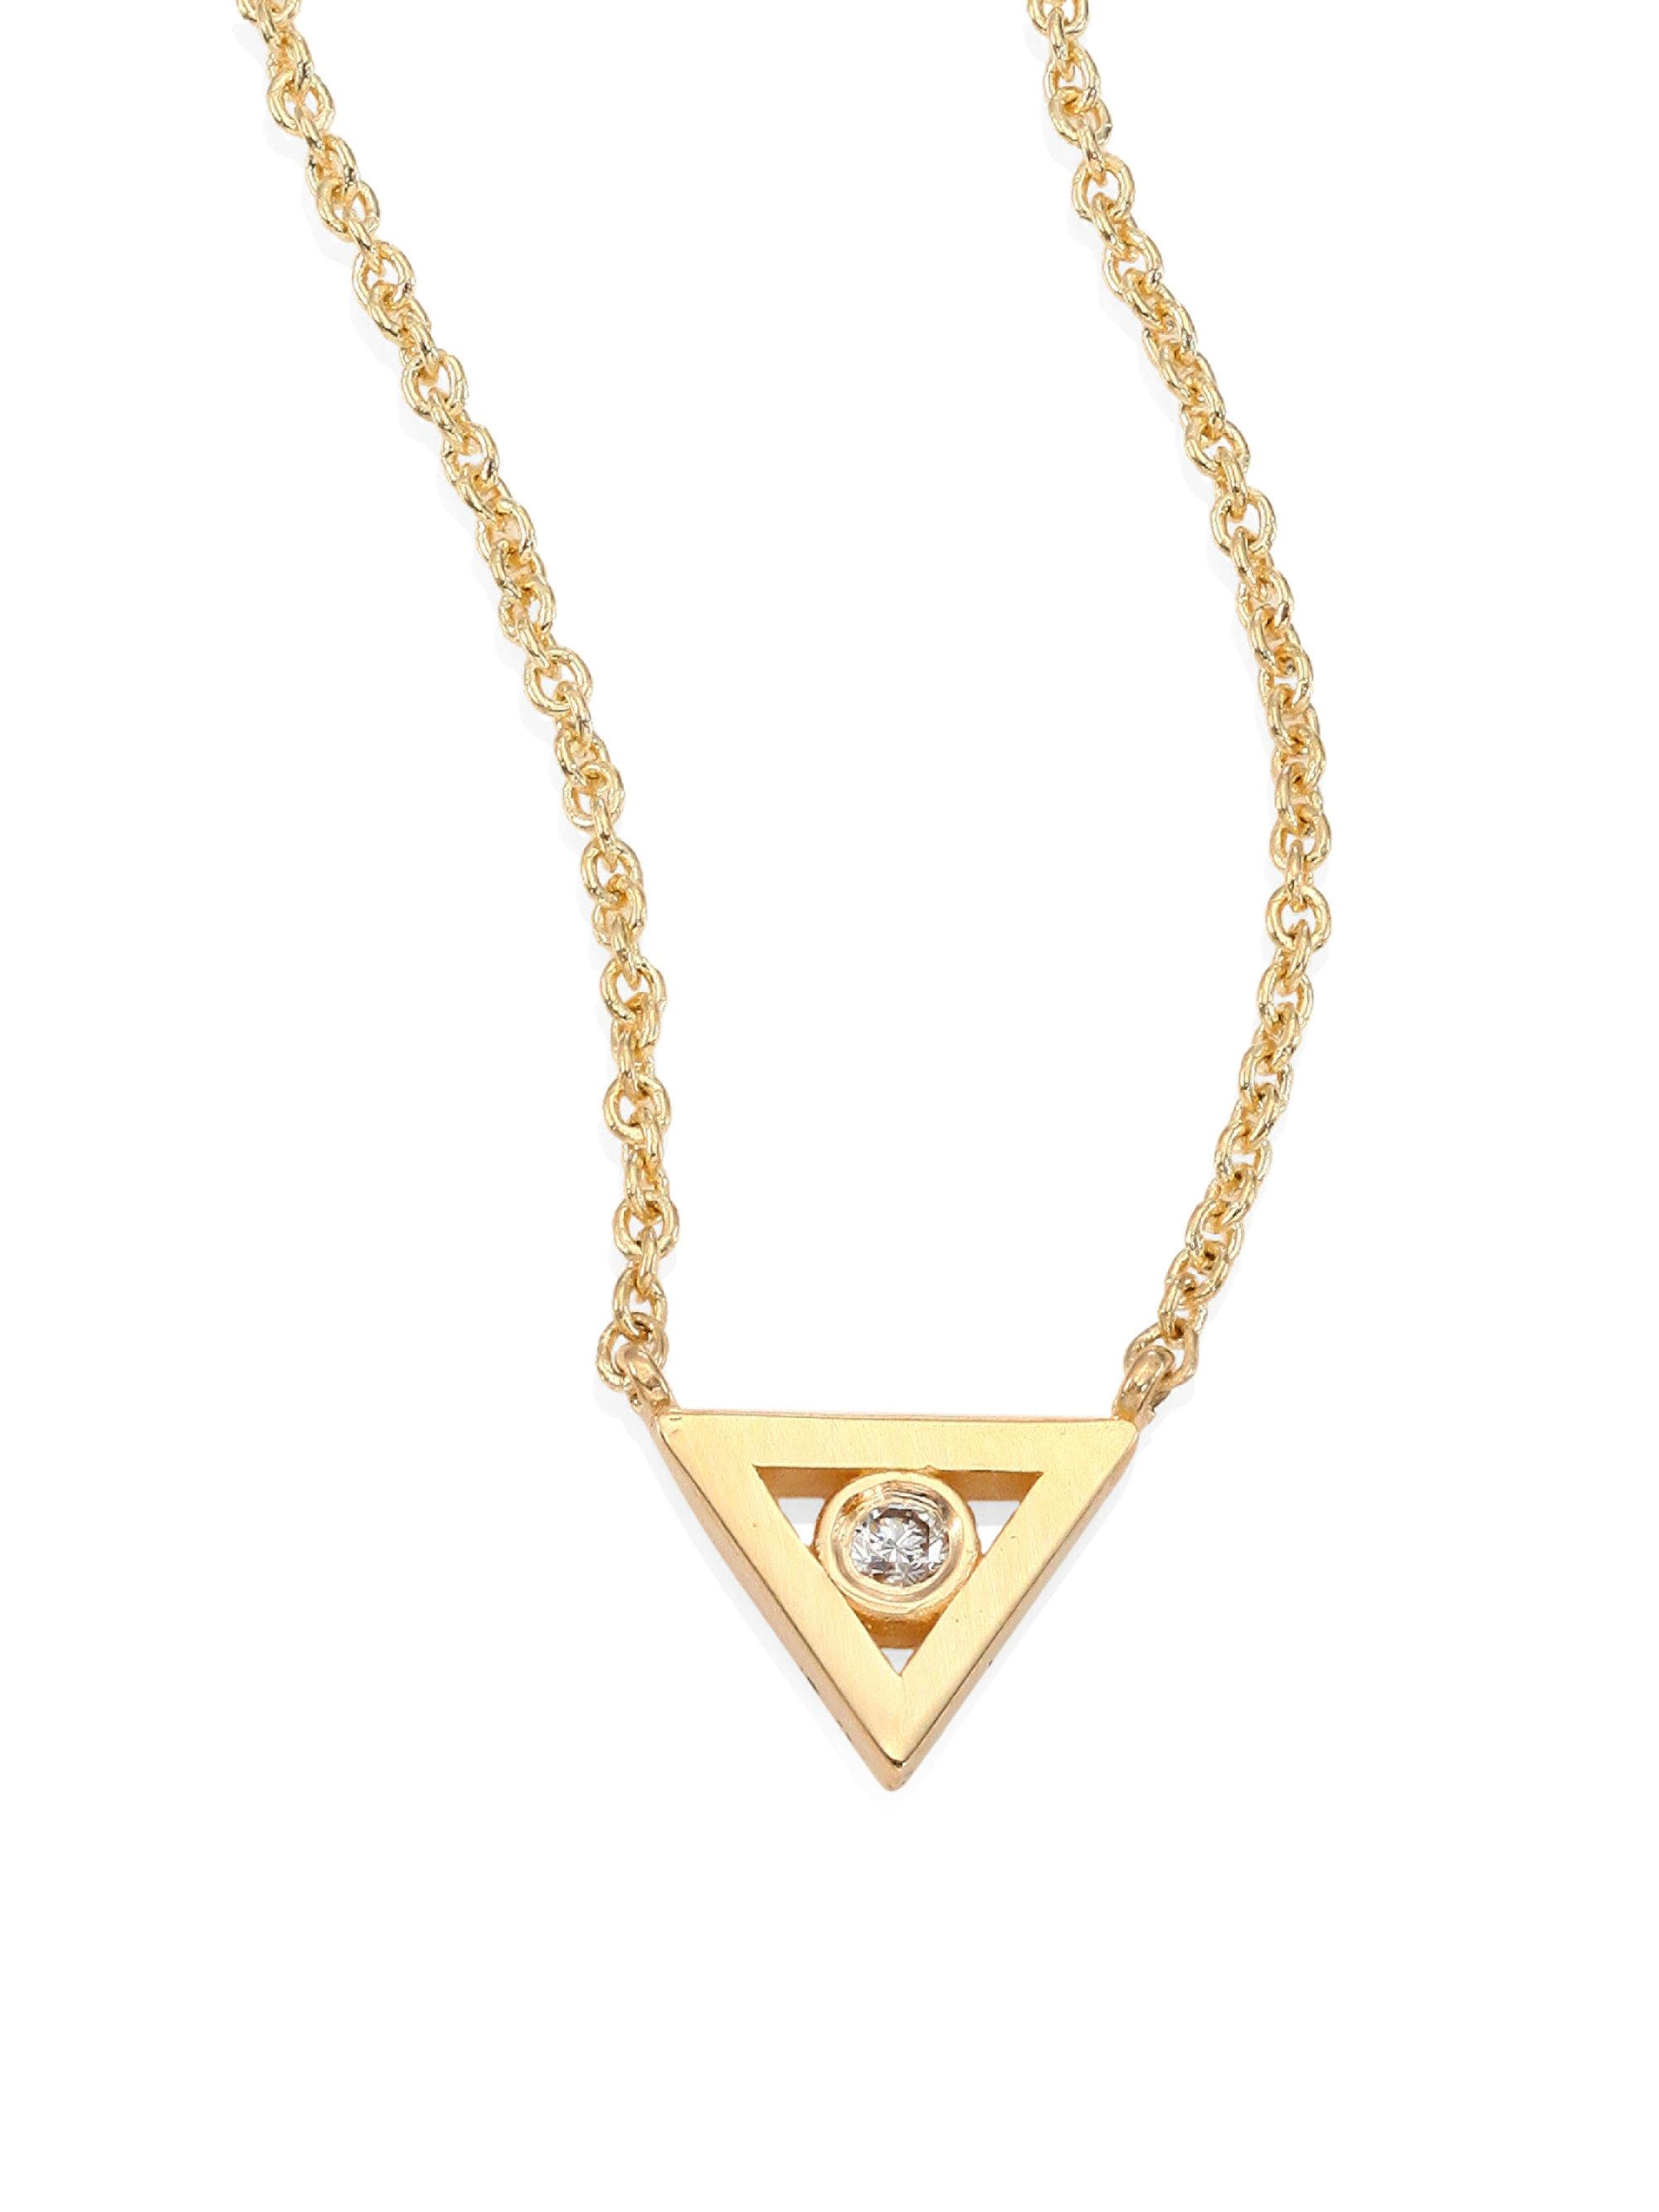 Sydney Evan 14k Diamond Triangle Pendant Necklace n9KtsD91DG